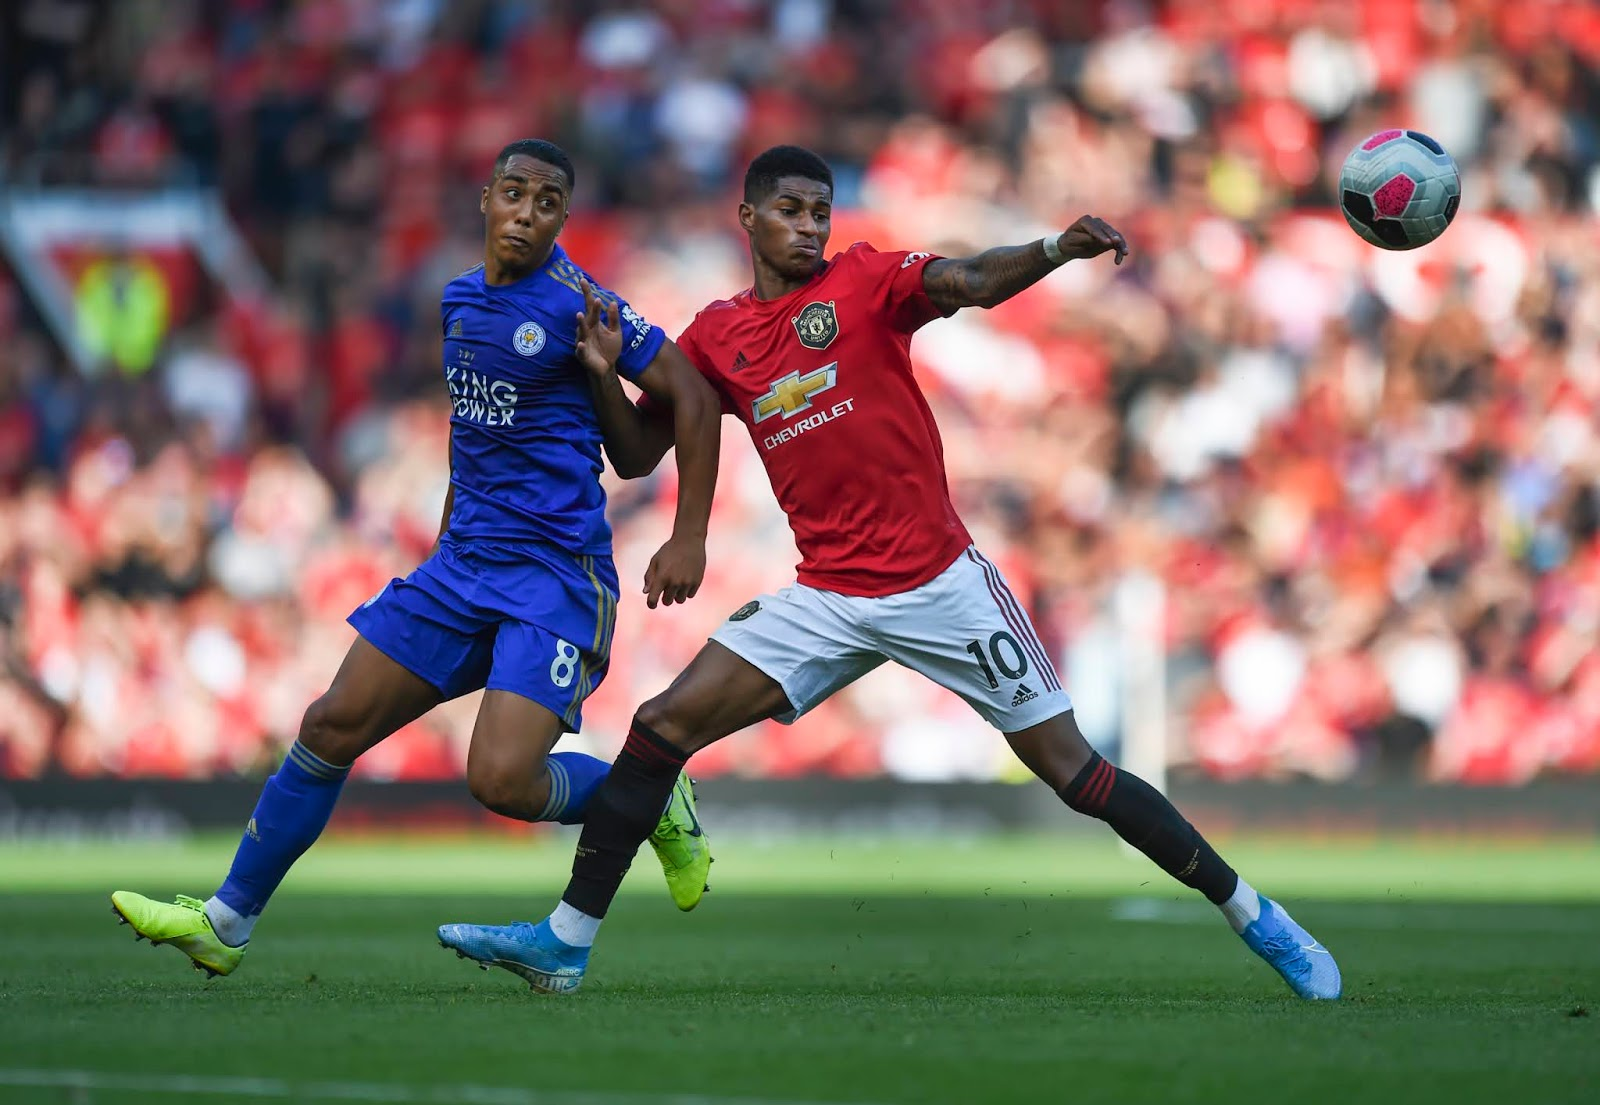 Youri Tielemans and Marcus Rashford duel for possession